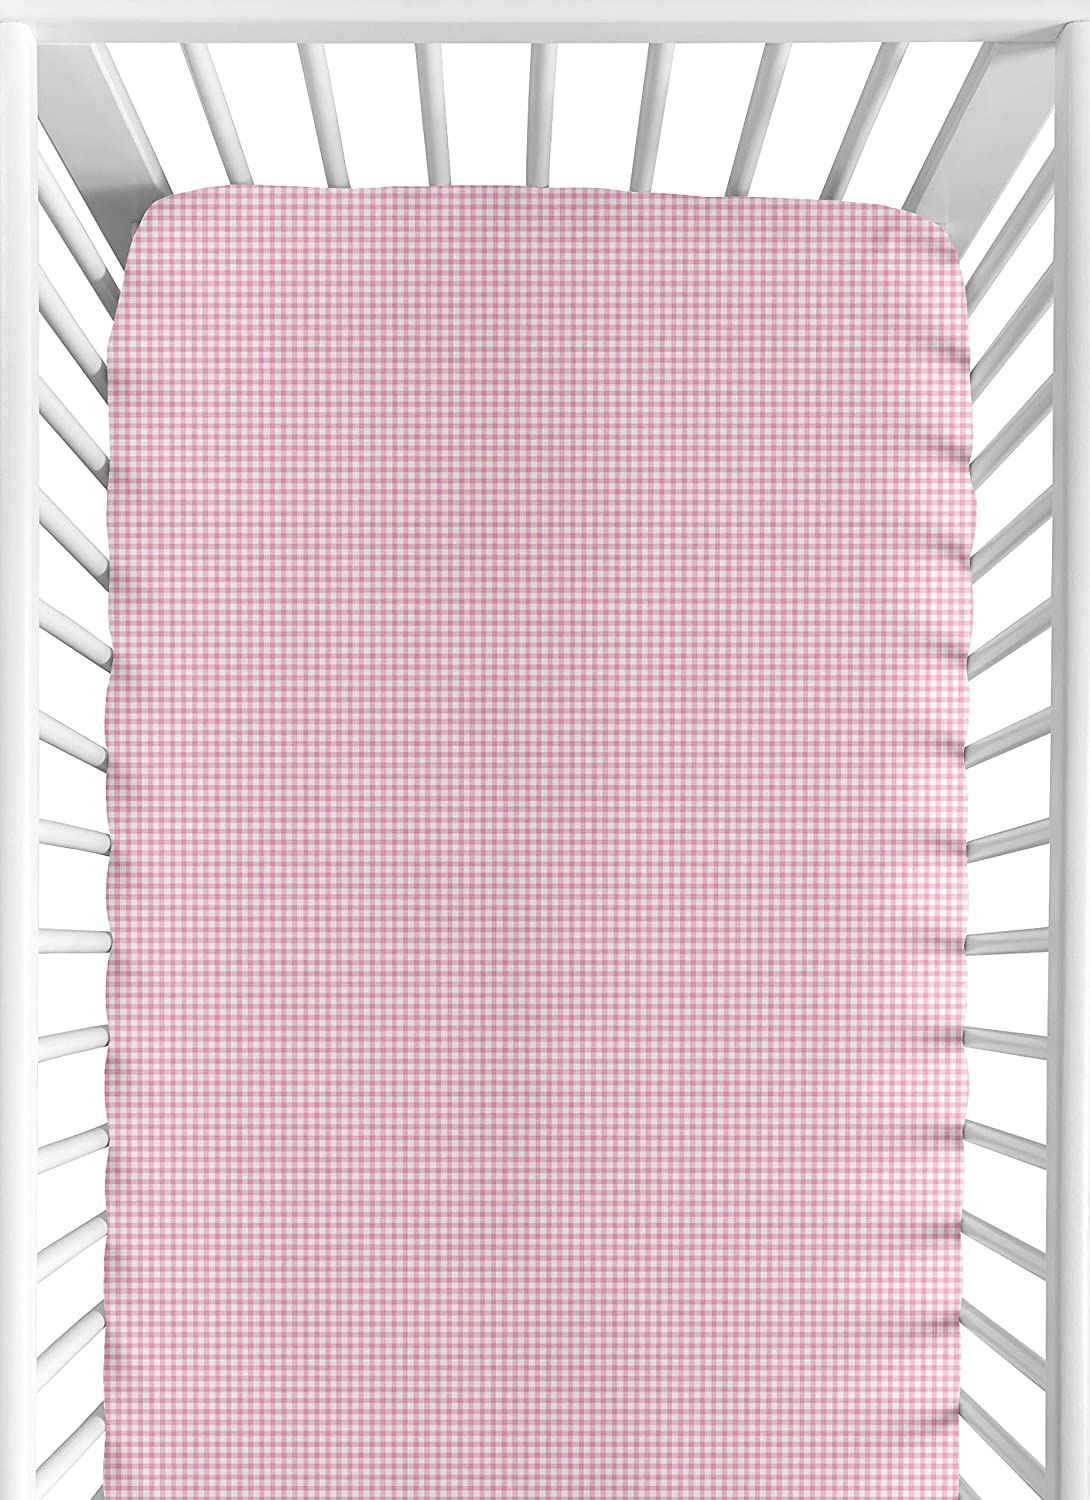 Amazon Com Sweet Jojo Designs Pink Toile Fitted Crib Sheet For Baby And Toddler Bedding Sets Gingham Print